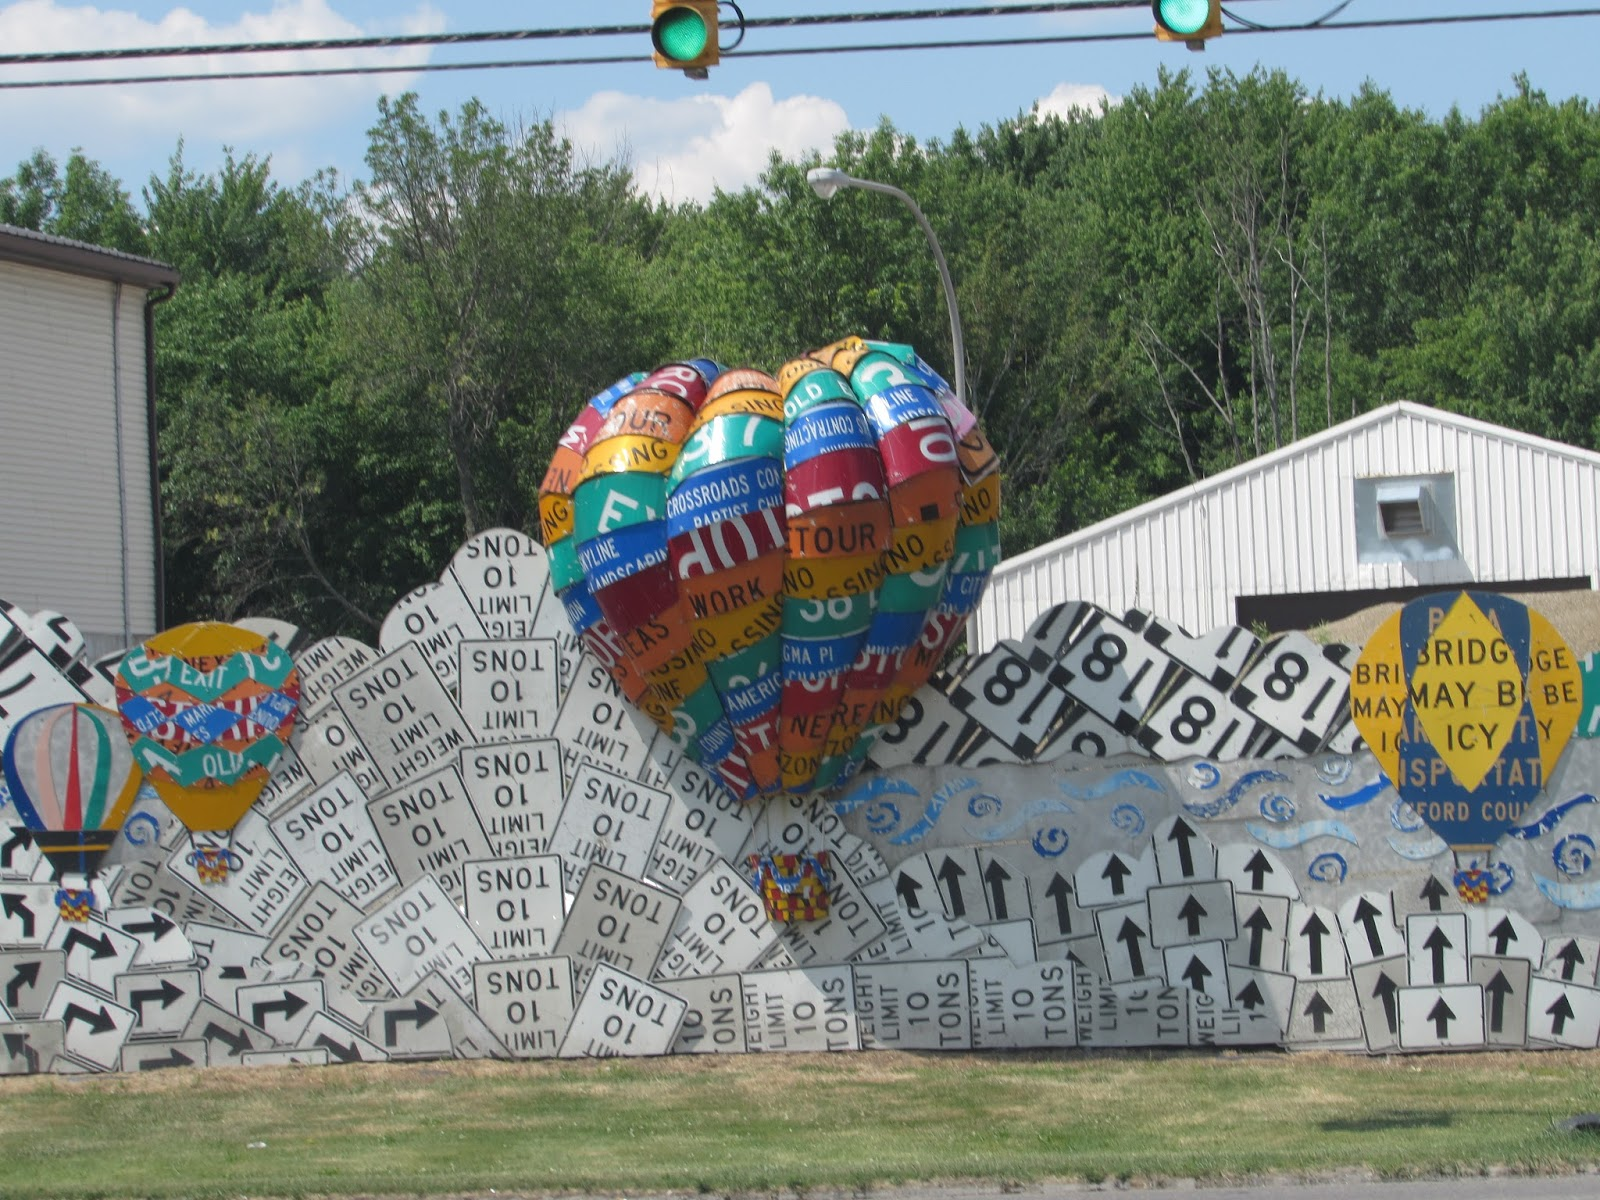 Some Great Creativity By Allegheny College Turned This Otherwise Mundane  Penndot Road Maintenance Building Into A Public Art Installation, By  Repurposing